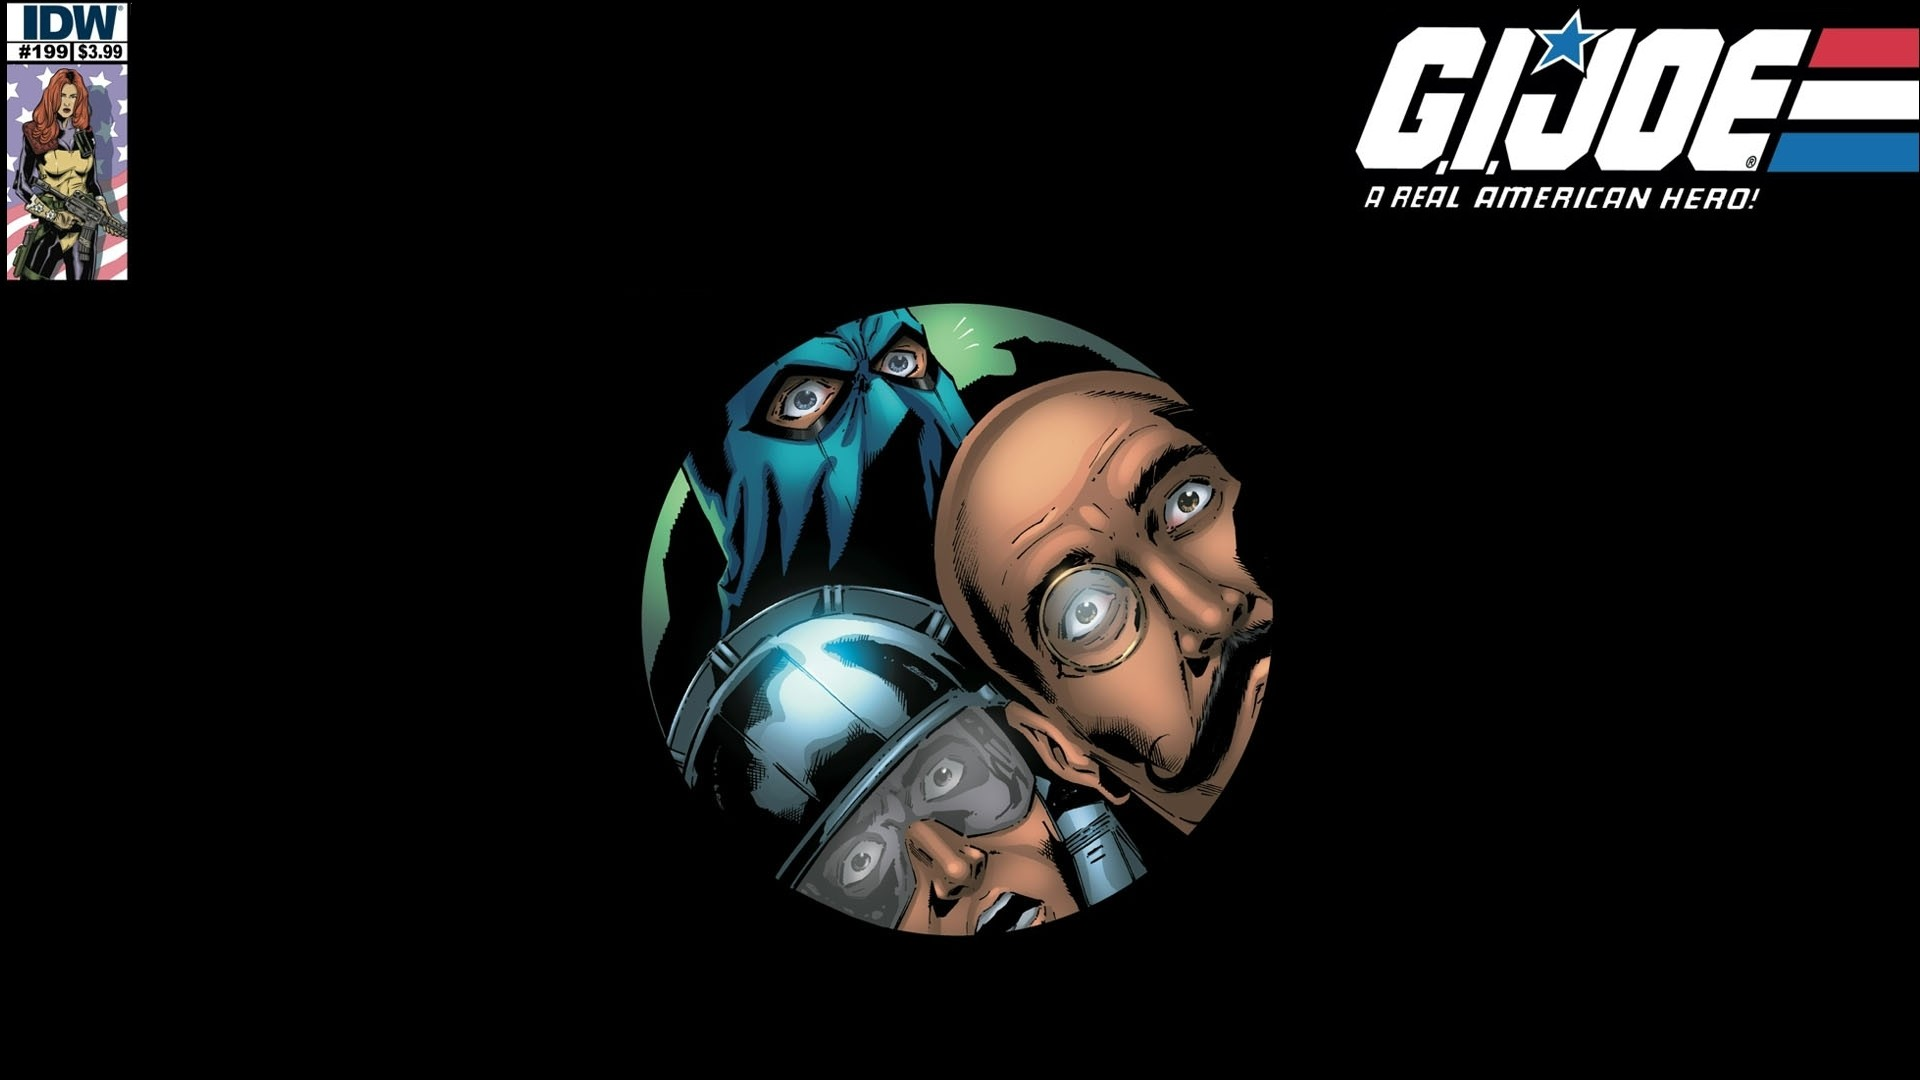 1920x1080 Season 2 on DVD. This highly collectible 3-DVD set contains ... Comics - G.I.  Joe: ...